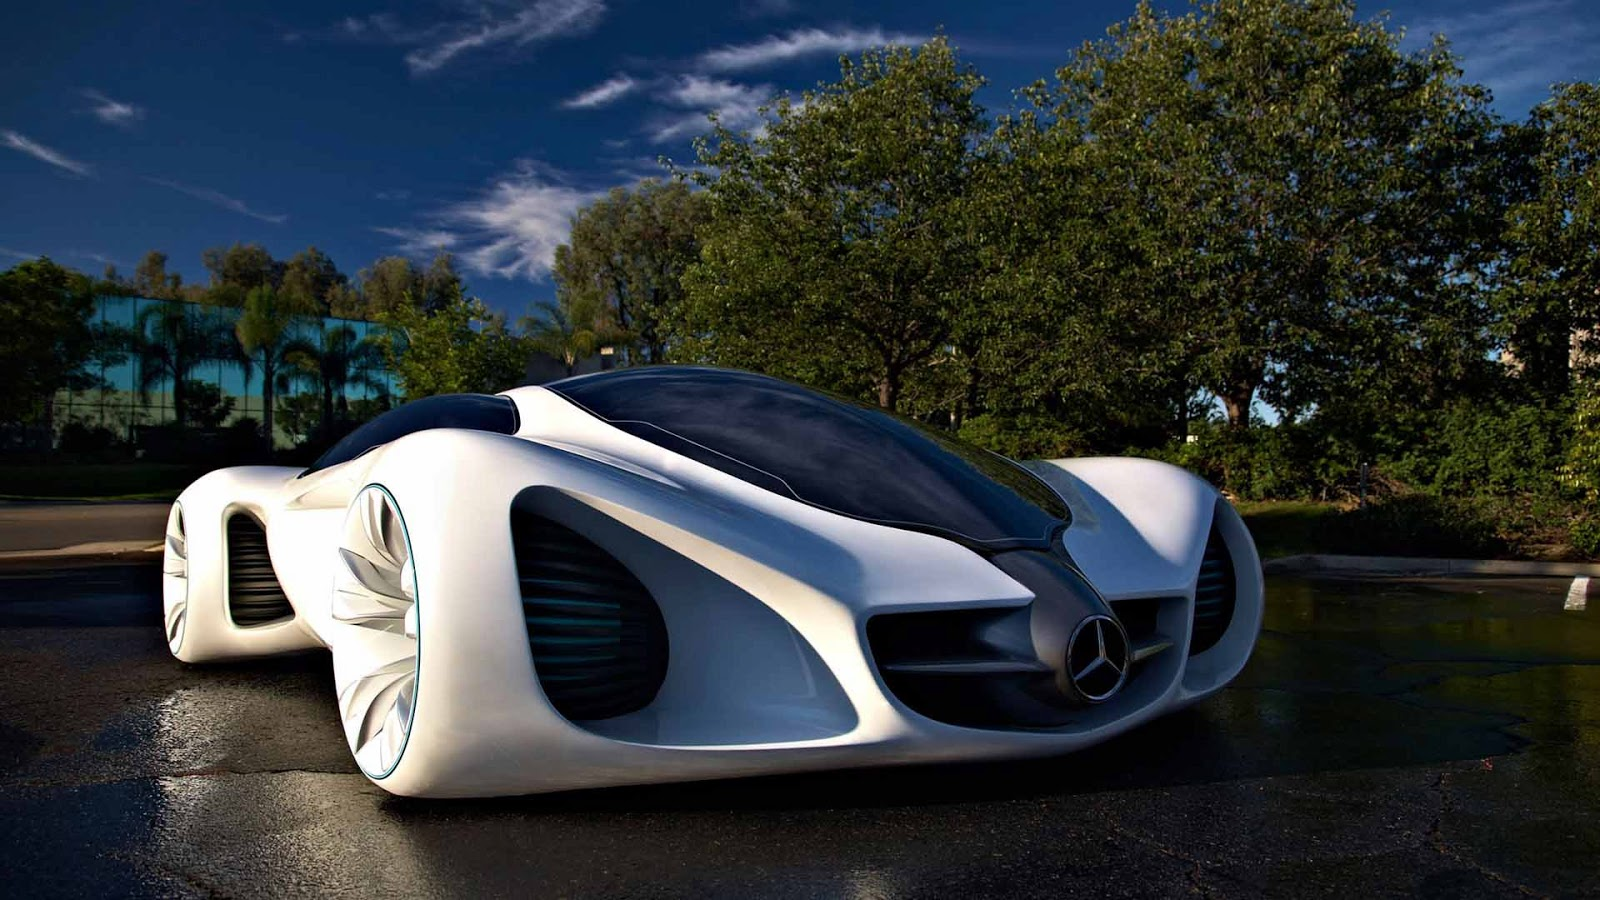 Cool D HD Wallpapers P Photosforwallpapers - Cool 3d cars